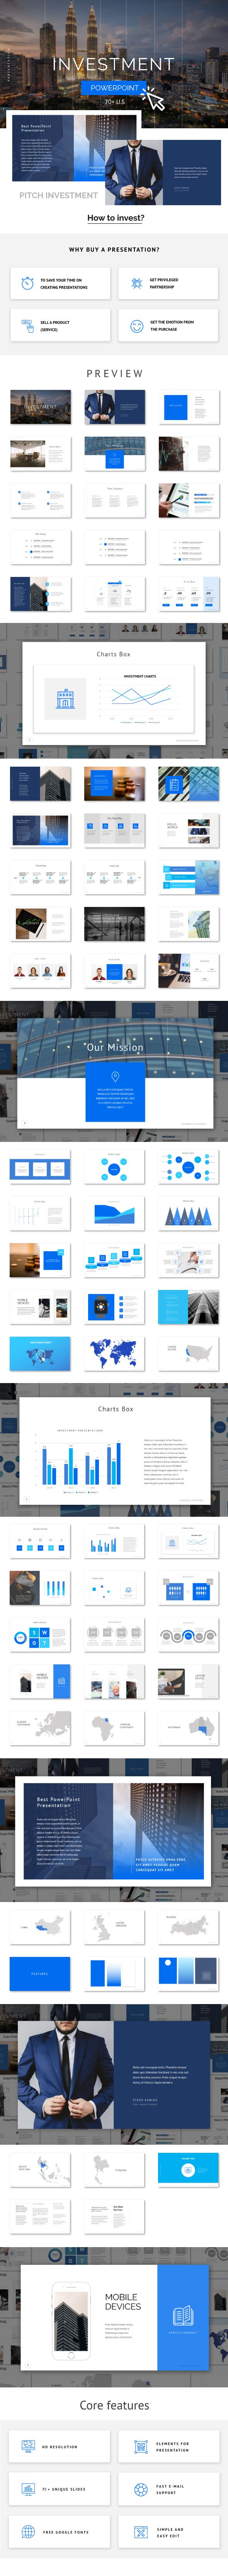 investment powerpoint presentation powerpoint templates